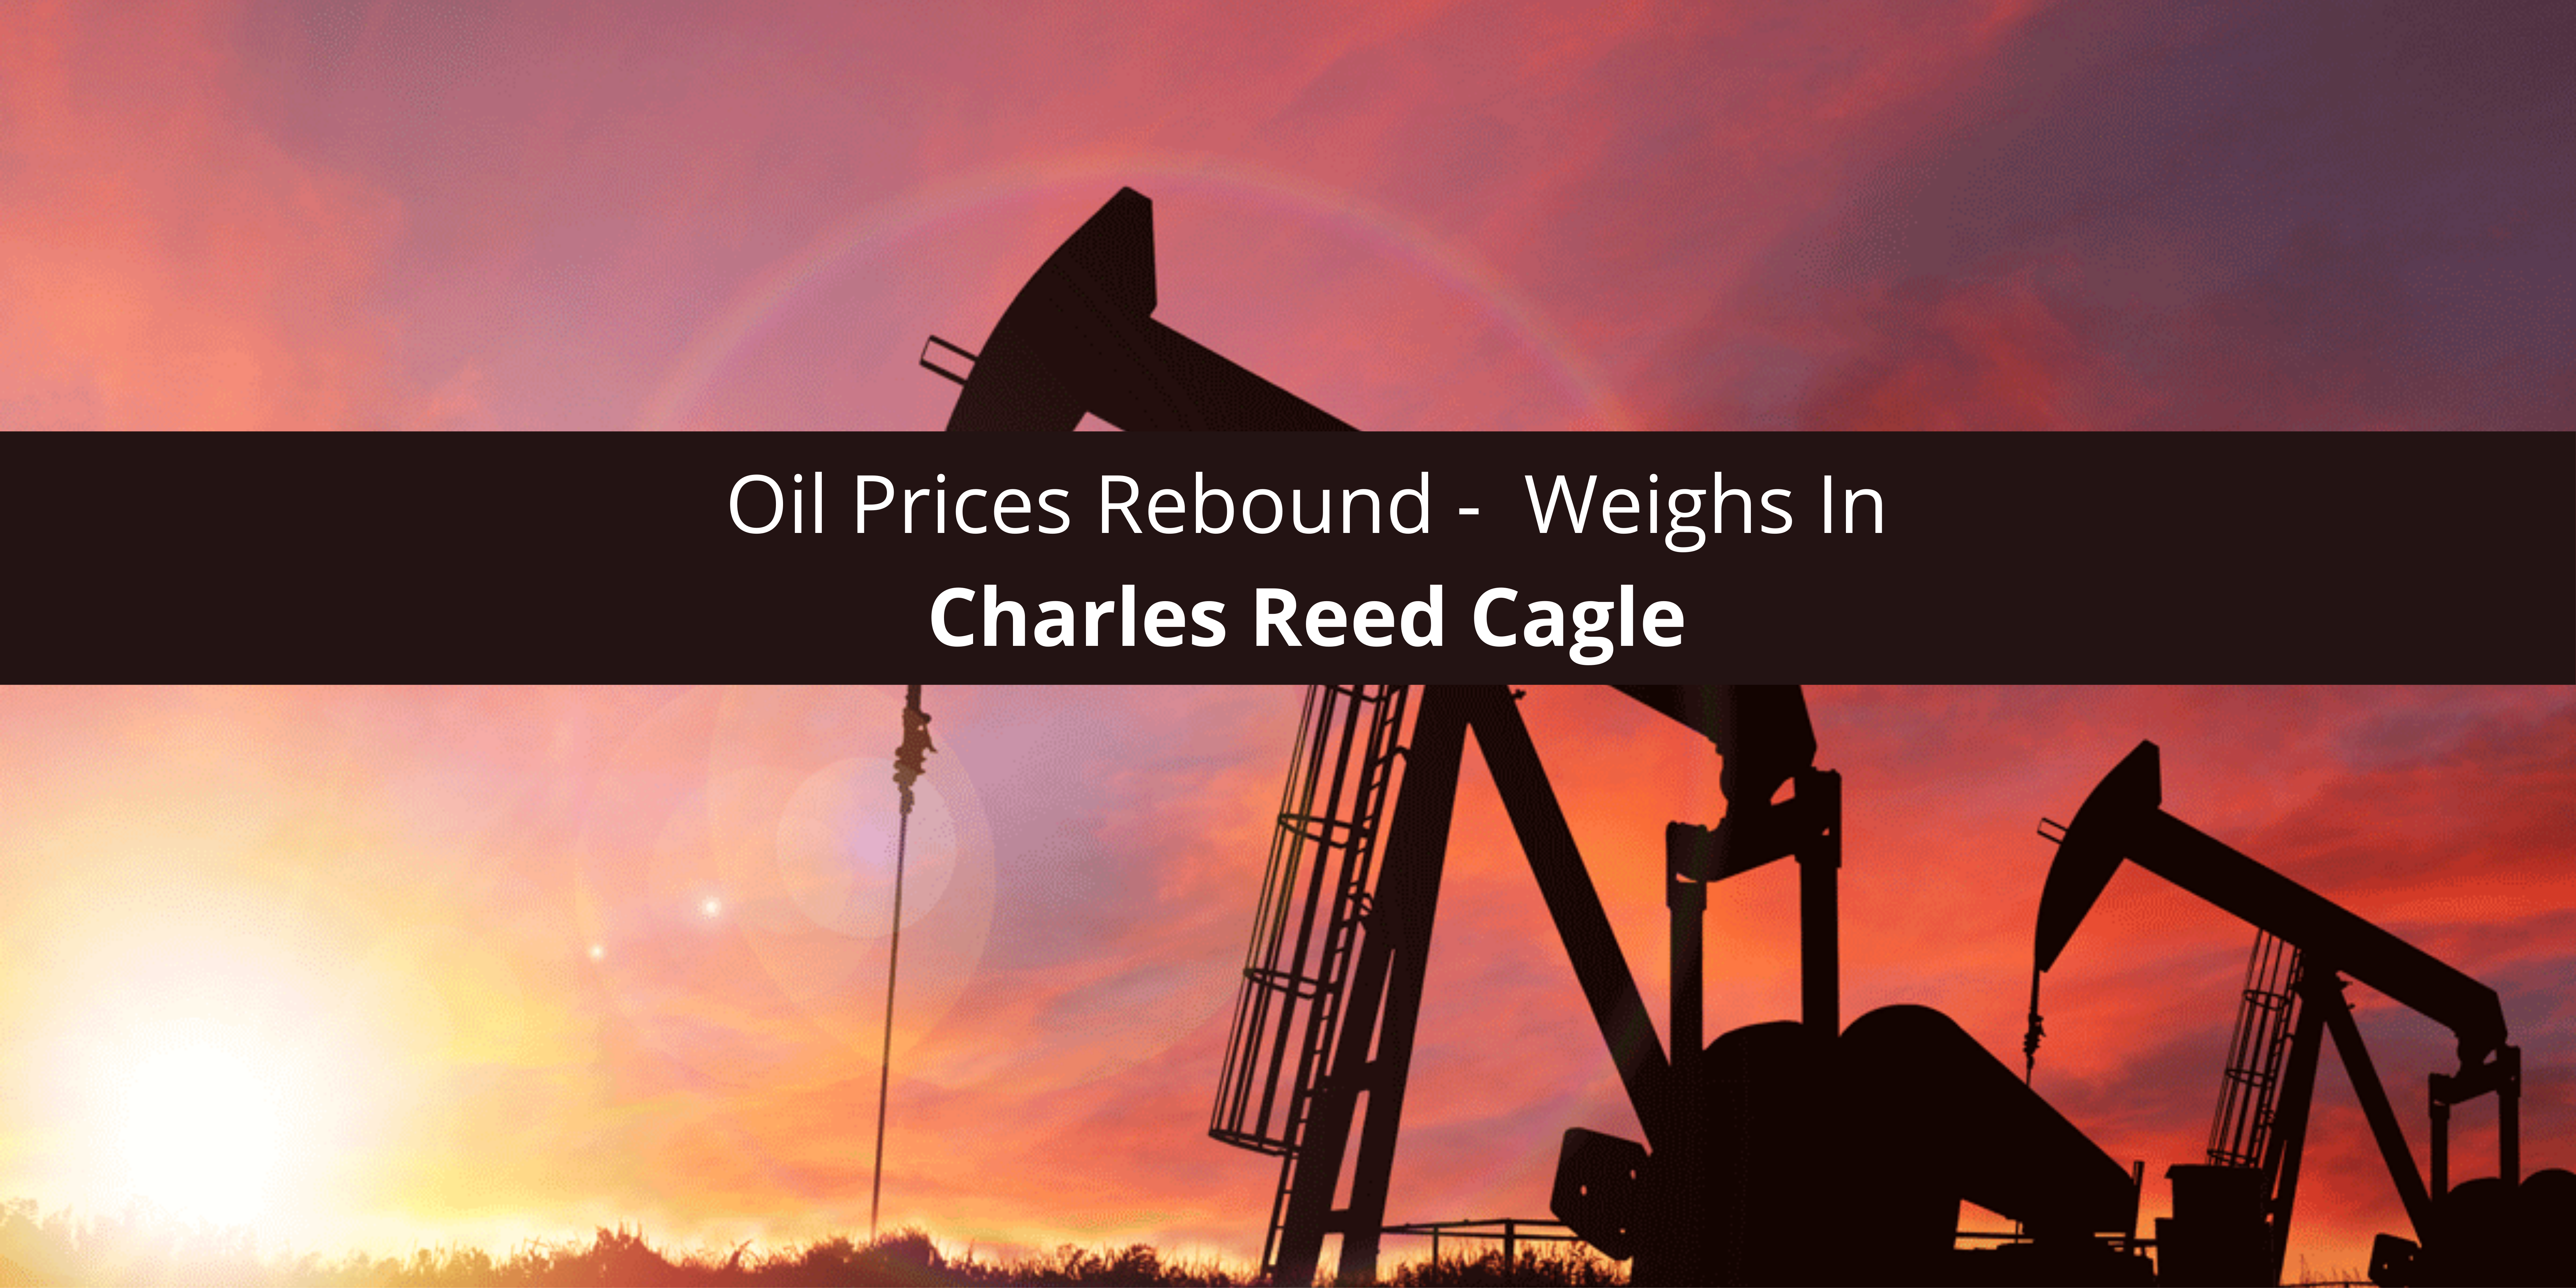 Oil Prices Rebound - Charles Reed Cagle Weighs In